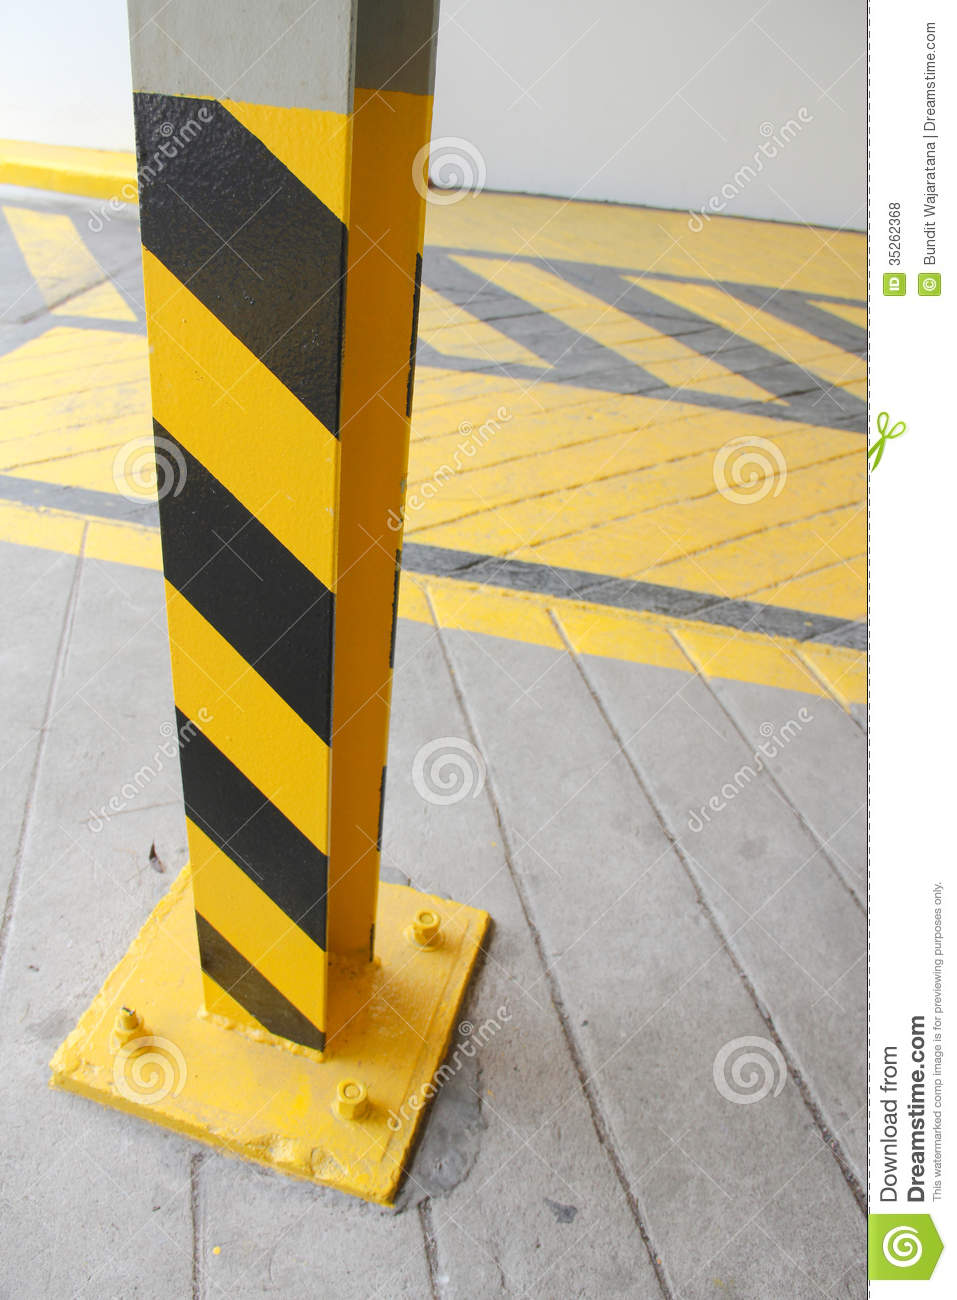 safety pillar royalty free stock photos